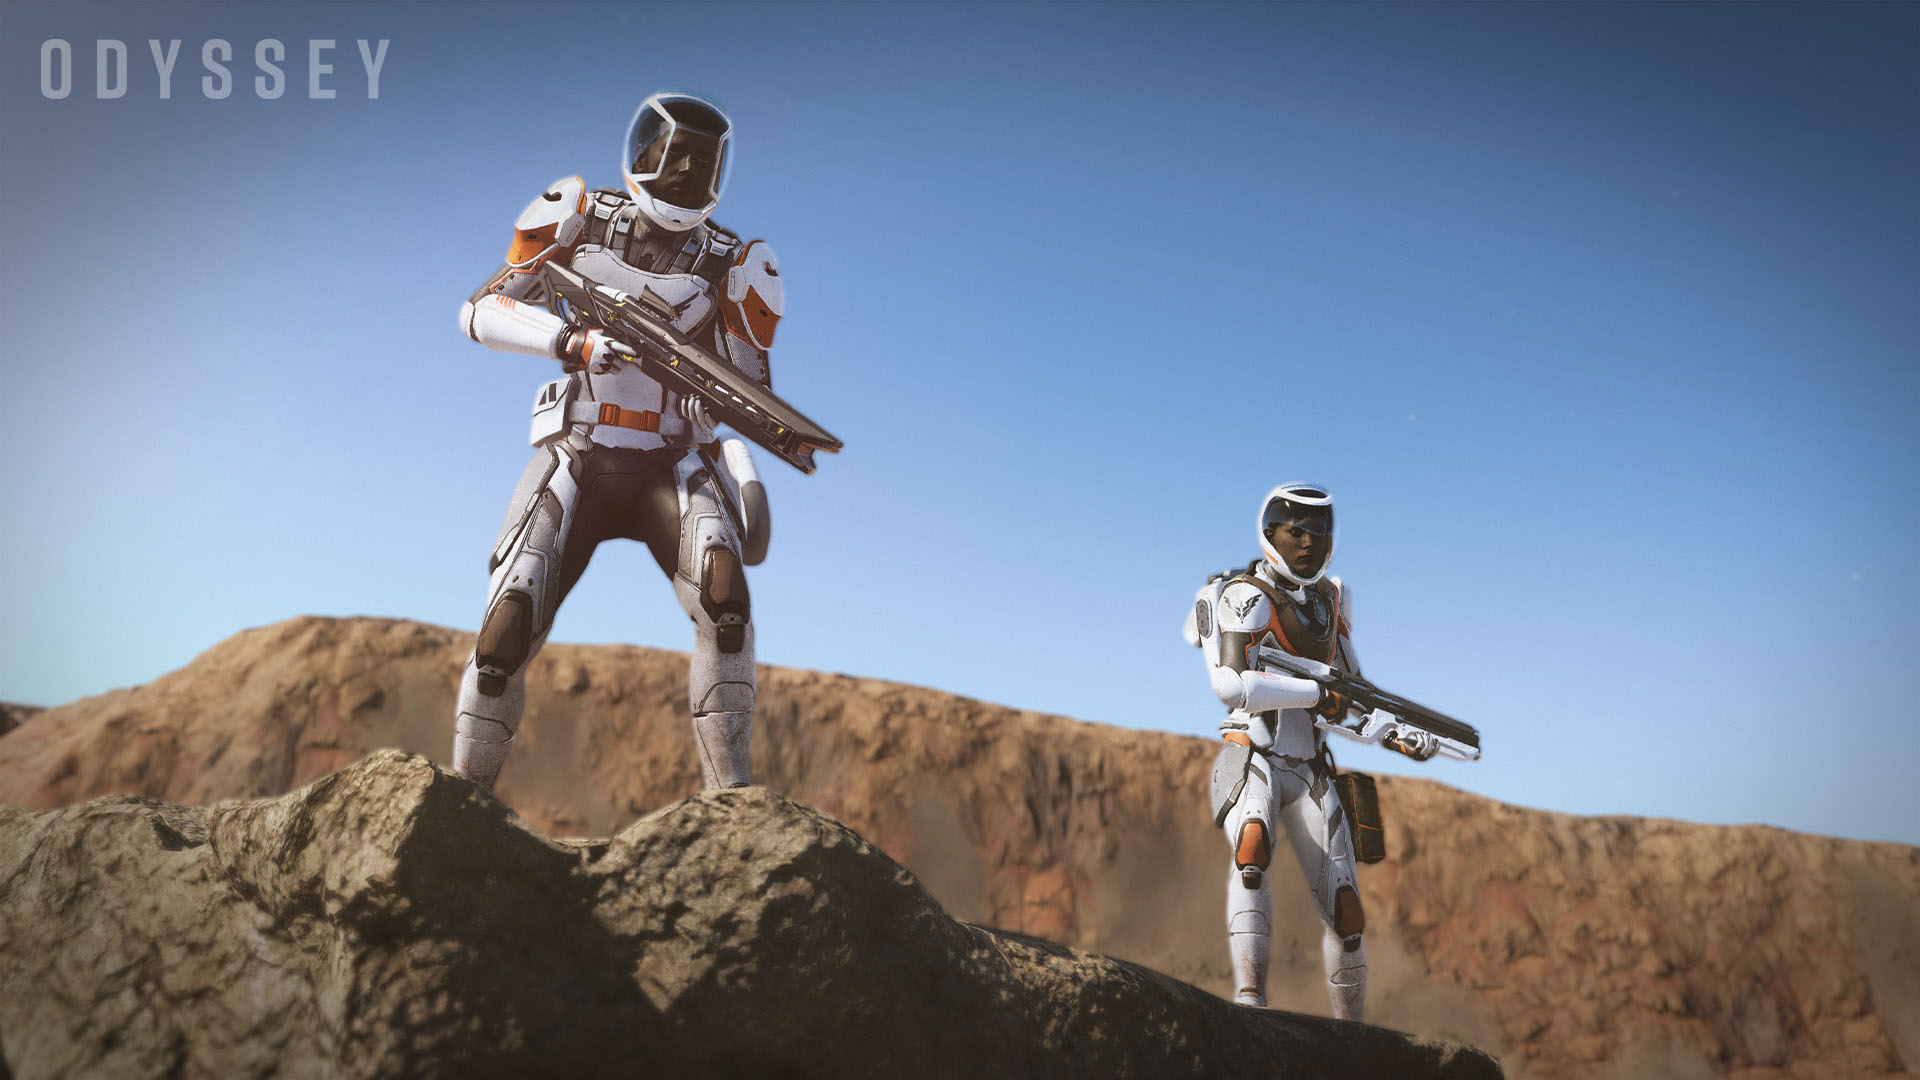 Elite Dangerous is Getting On-Foot Exploration in Odyssey Expansion